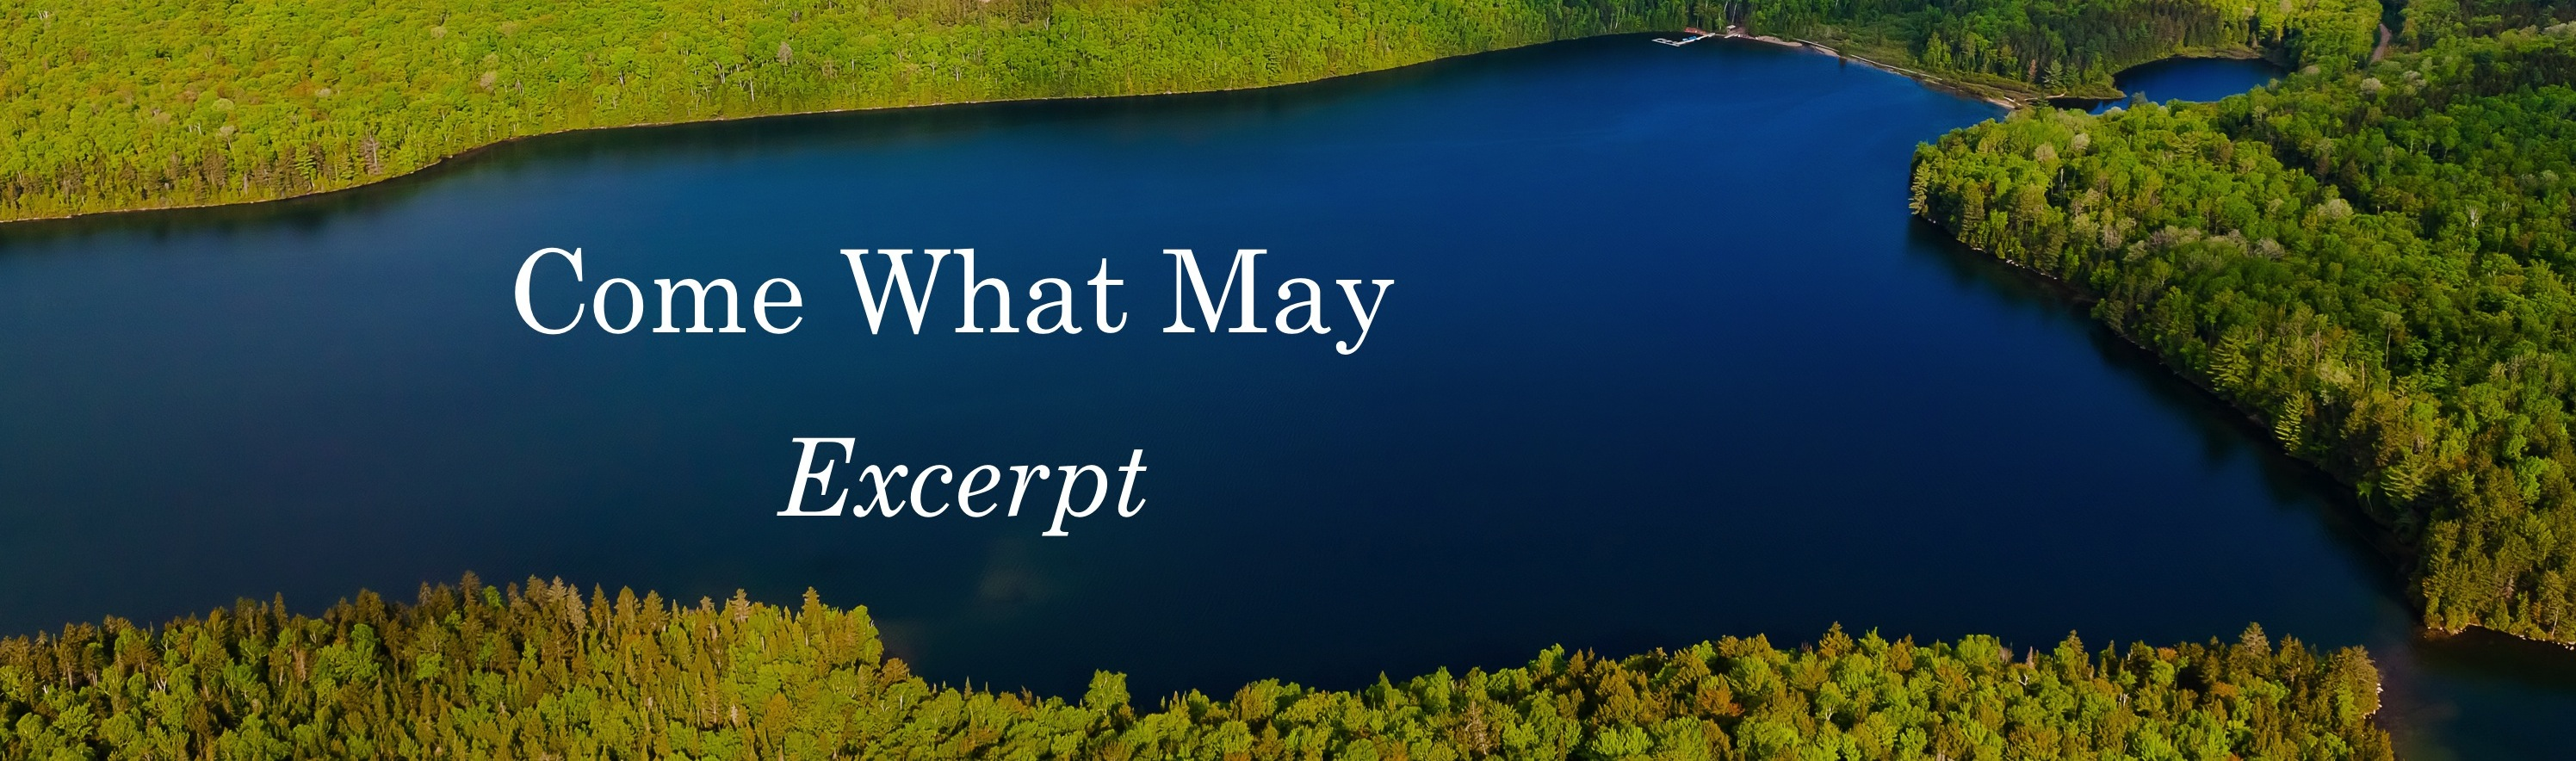 Come What May Excerpt